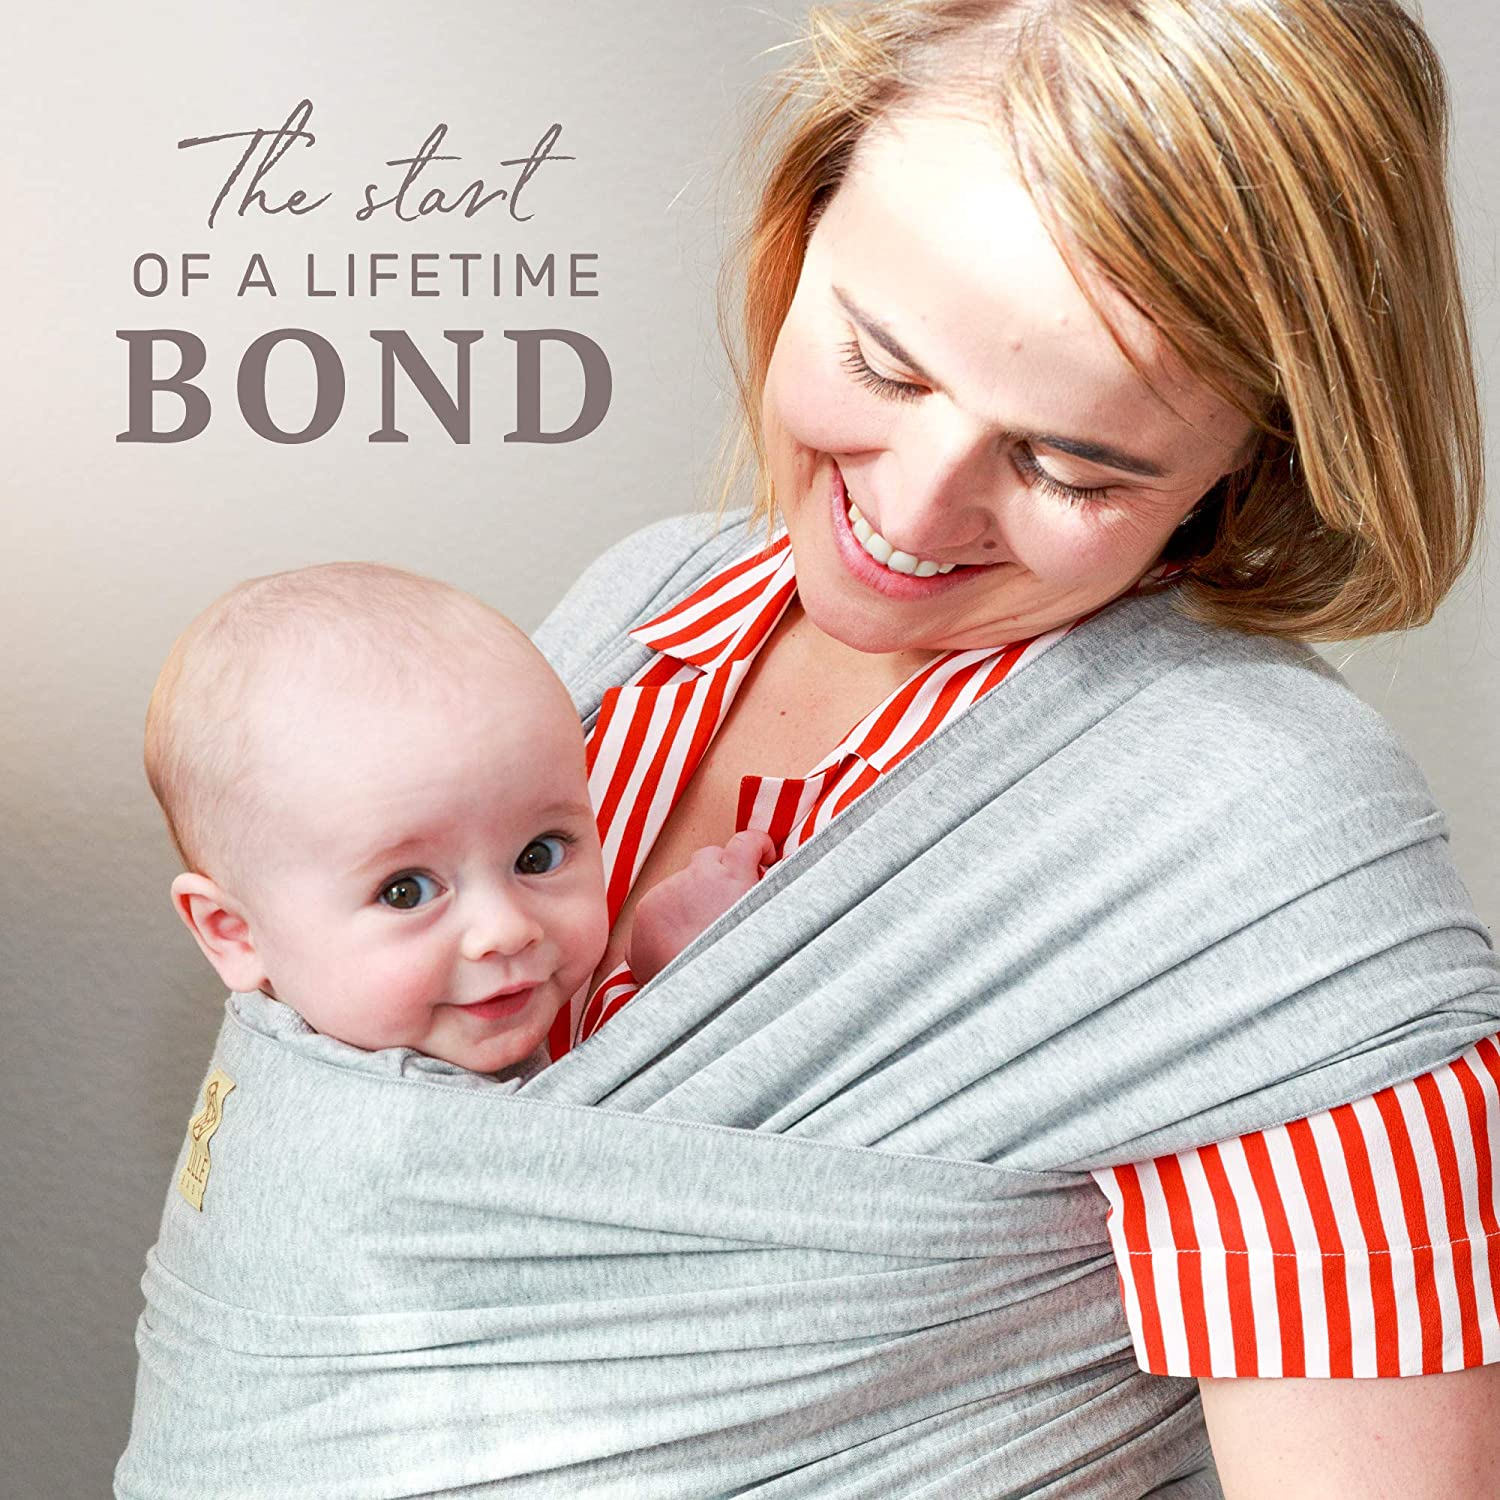 L LL baby Tie The Knot Wrap II, Heather Grey – Baby Carrier Wrap, Comfortable and Ergonomic, Multi-Position Carrying for Infants Babies Toddlers